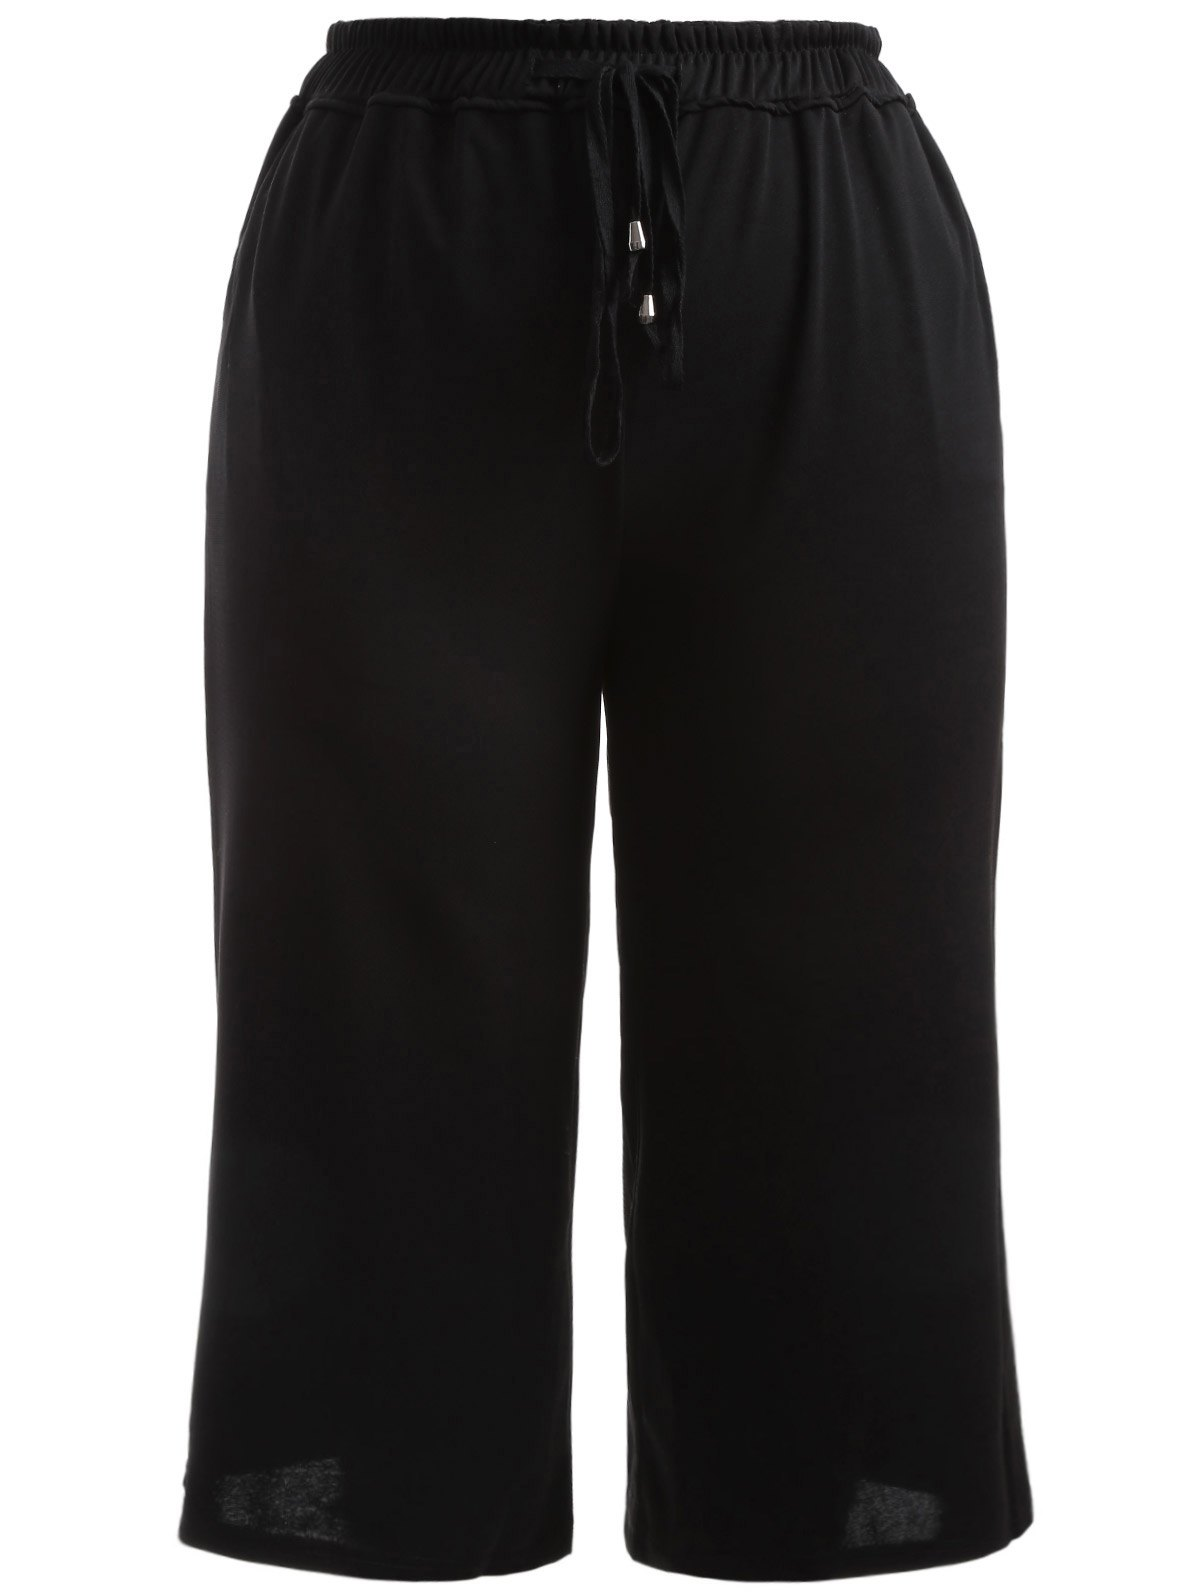 Trendy Drawstring Black Wide Leg Pants For Women